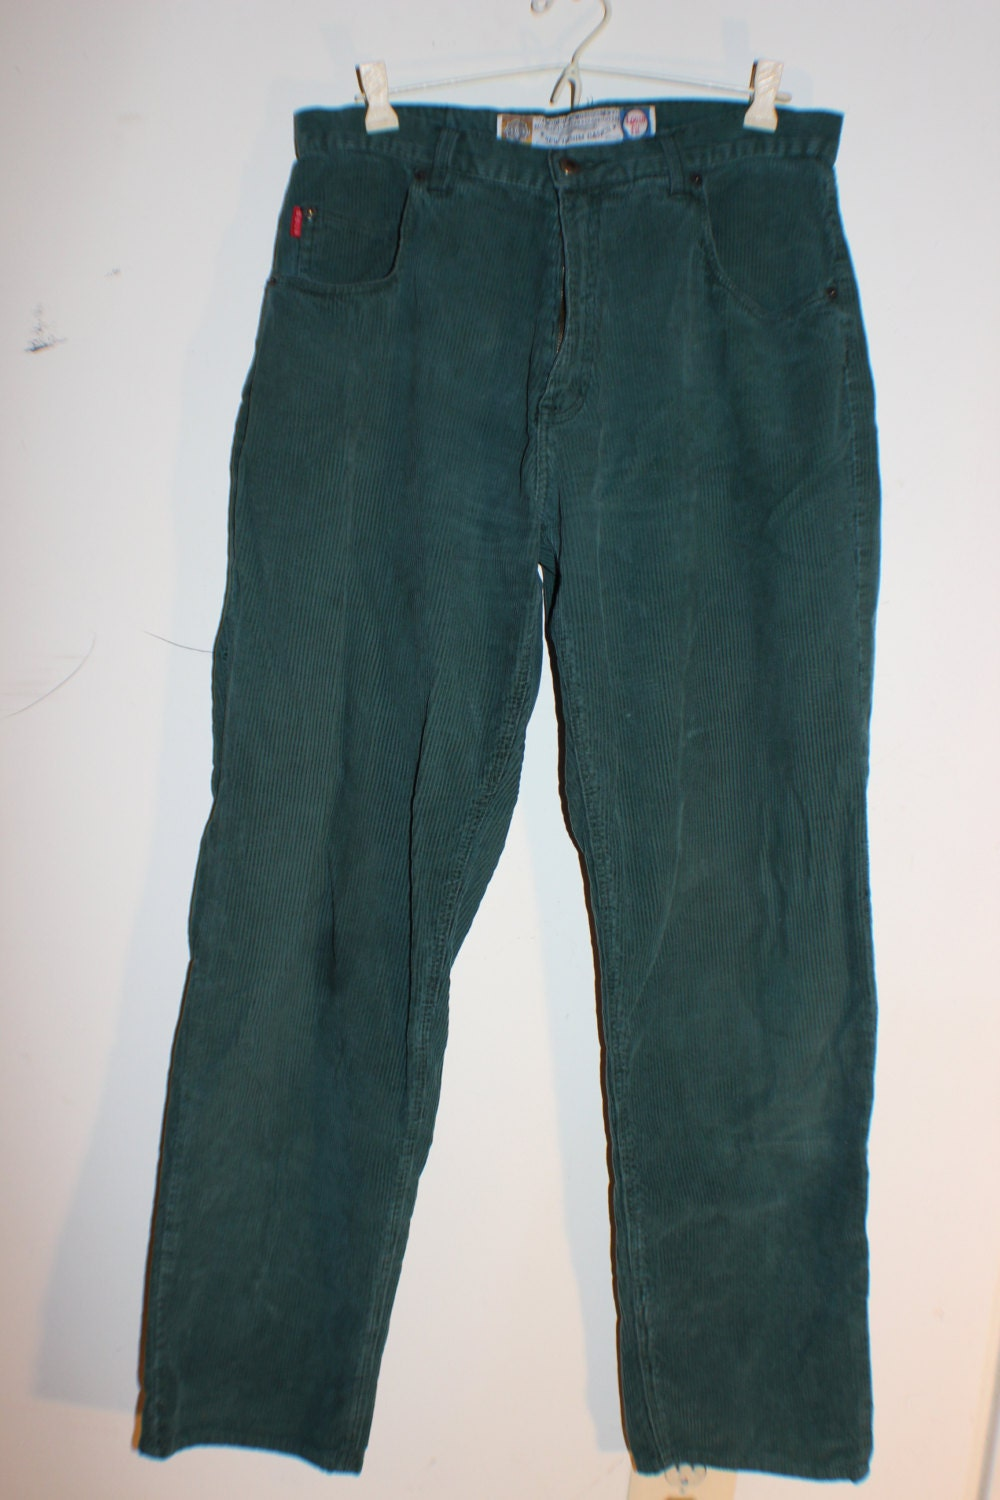 Find teal pants at Macy's Macy's Presents: The Edit - A curated mix of fashion and inspiration Check It Out Free Shipping with $49 purchase + Free Store Pickup.